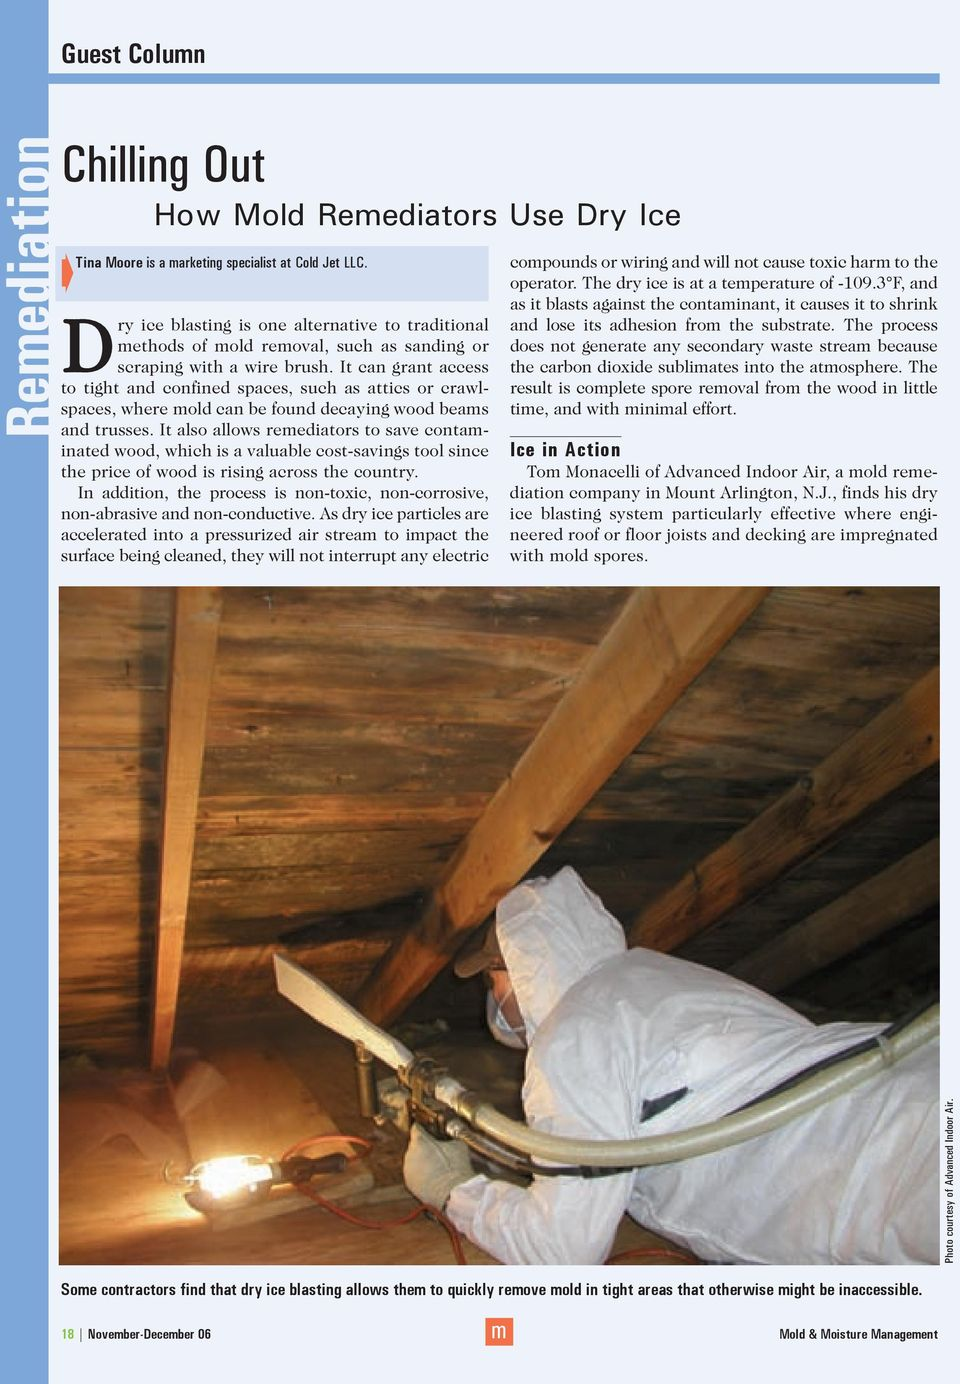 It can grant access to tight and confined spaces, such as attics or crawlspaces, where mold can be found decaying wood beams and trusses.